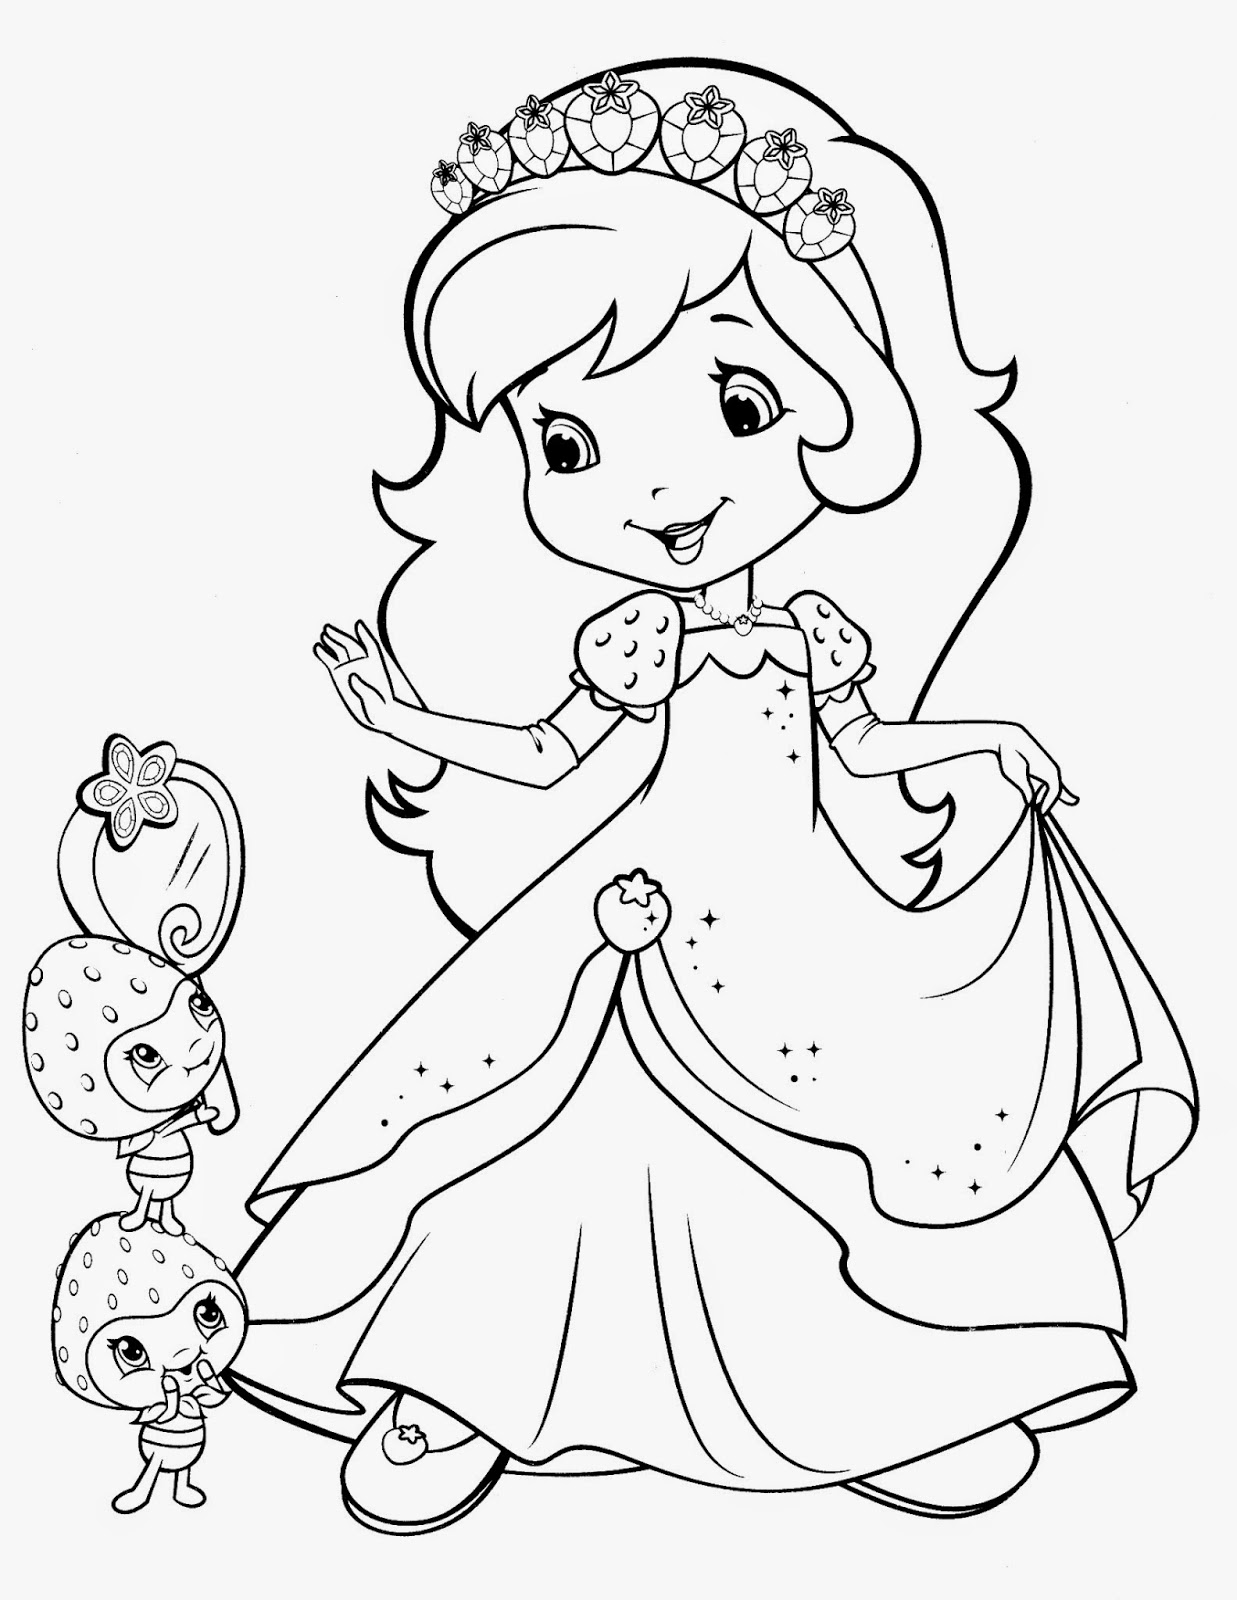 strawberry girl coloring pages strawberry shortcake berrykins coloring pages download and coloring girl pages strawberry